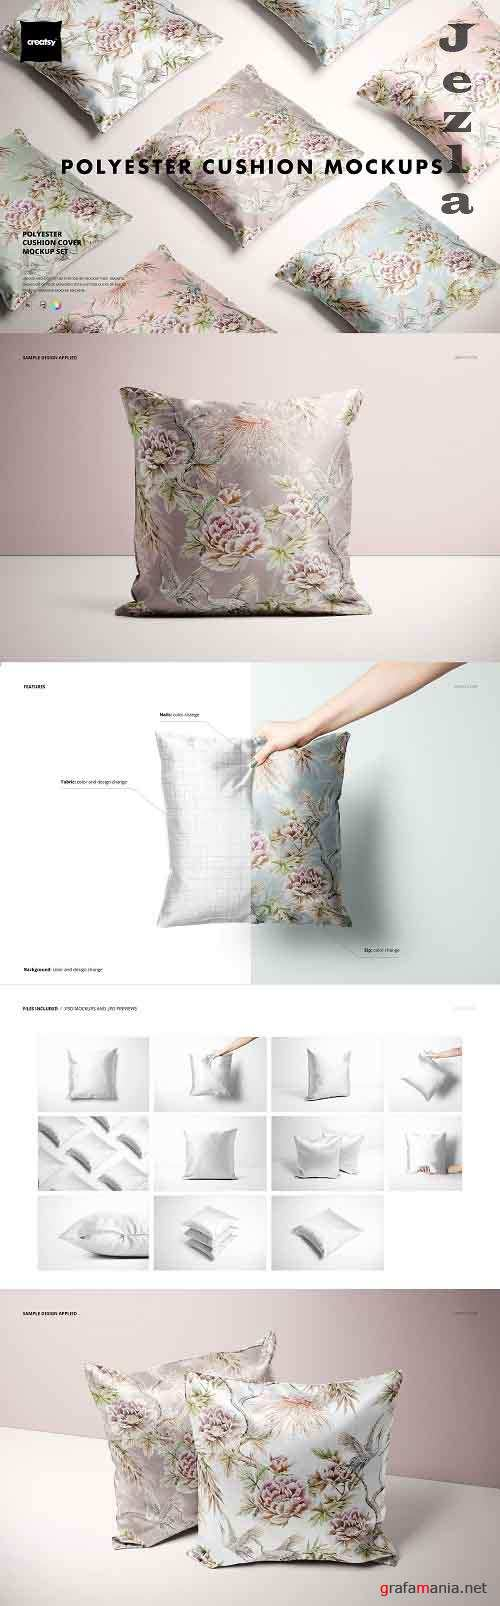 CreativeMarket - Polyester Cushion Cover Mockup Set 5729924 (Full Version)